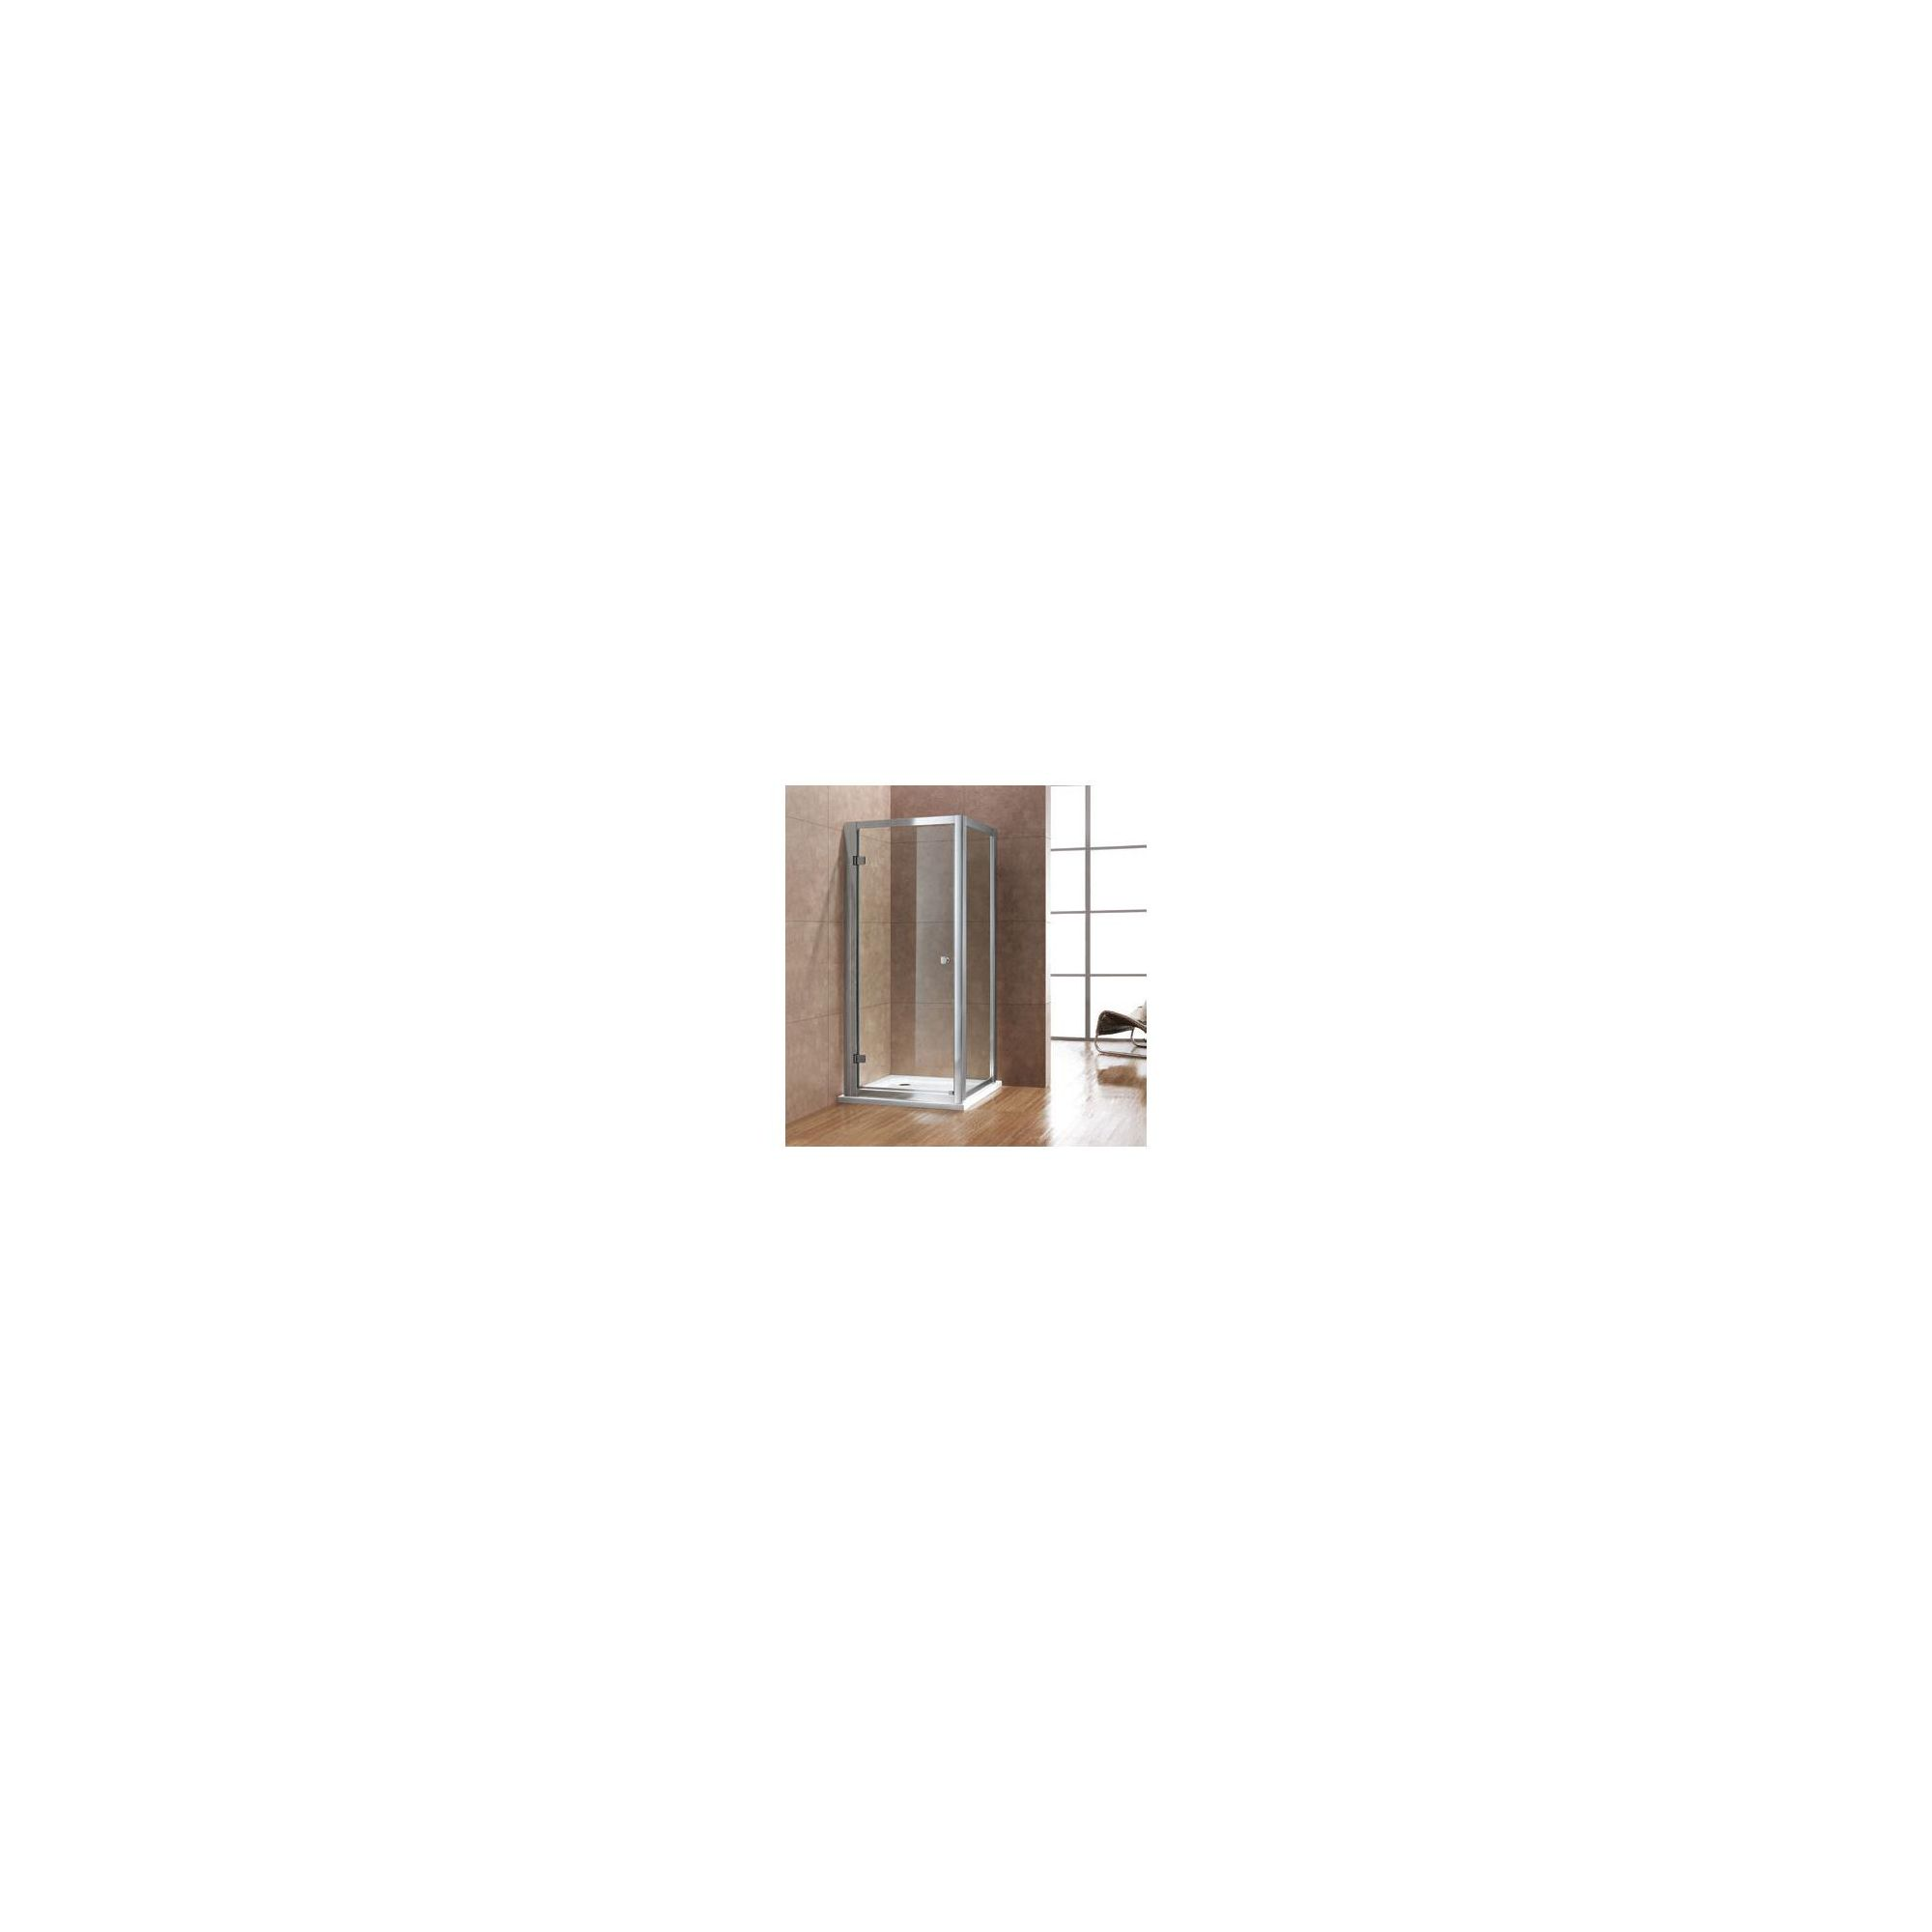 Duchy Premium Hinged Door Shower Enclosure, 1000mm x 760mm, 8mm Glass, Low Profile Tray at Tesco Direct